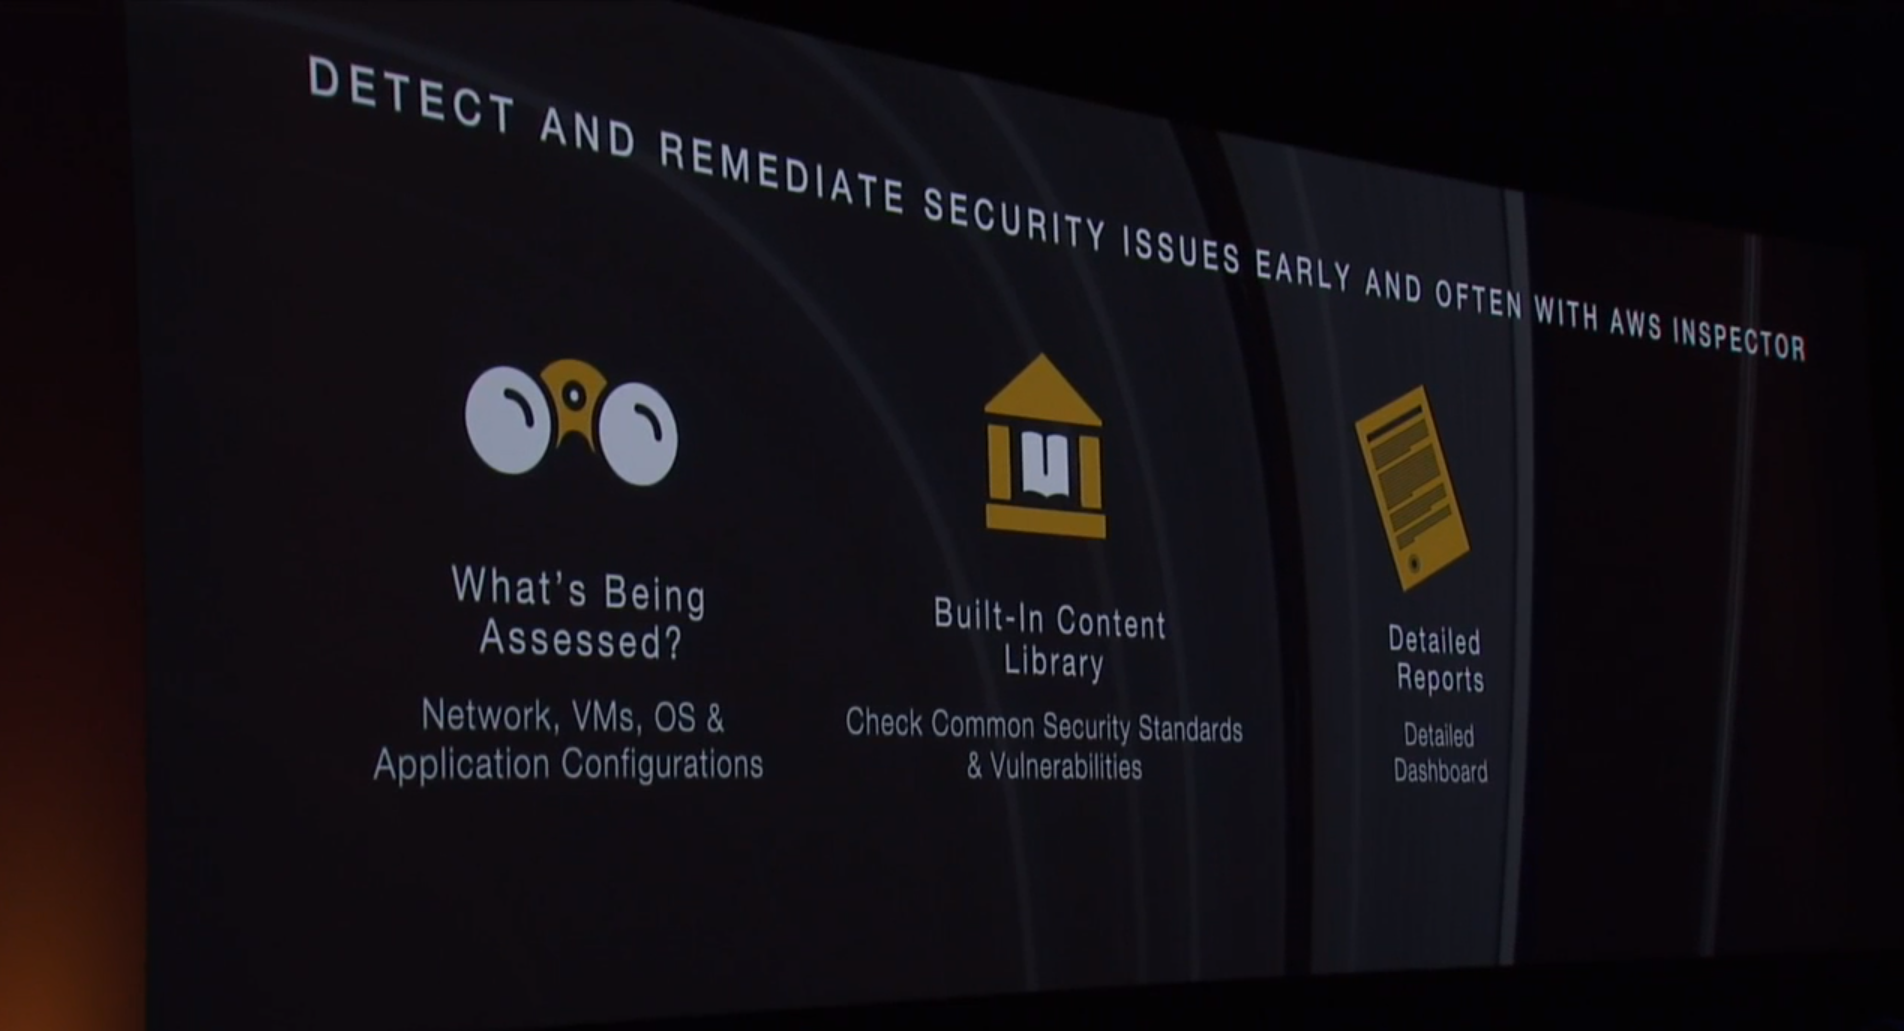 Amazon Web Services introduces the Amazon Inspector service in preview at the AWS re:Invent conference in Las Vegas on Oct. 7.